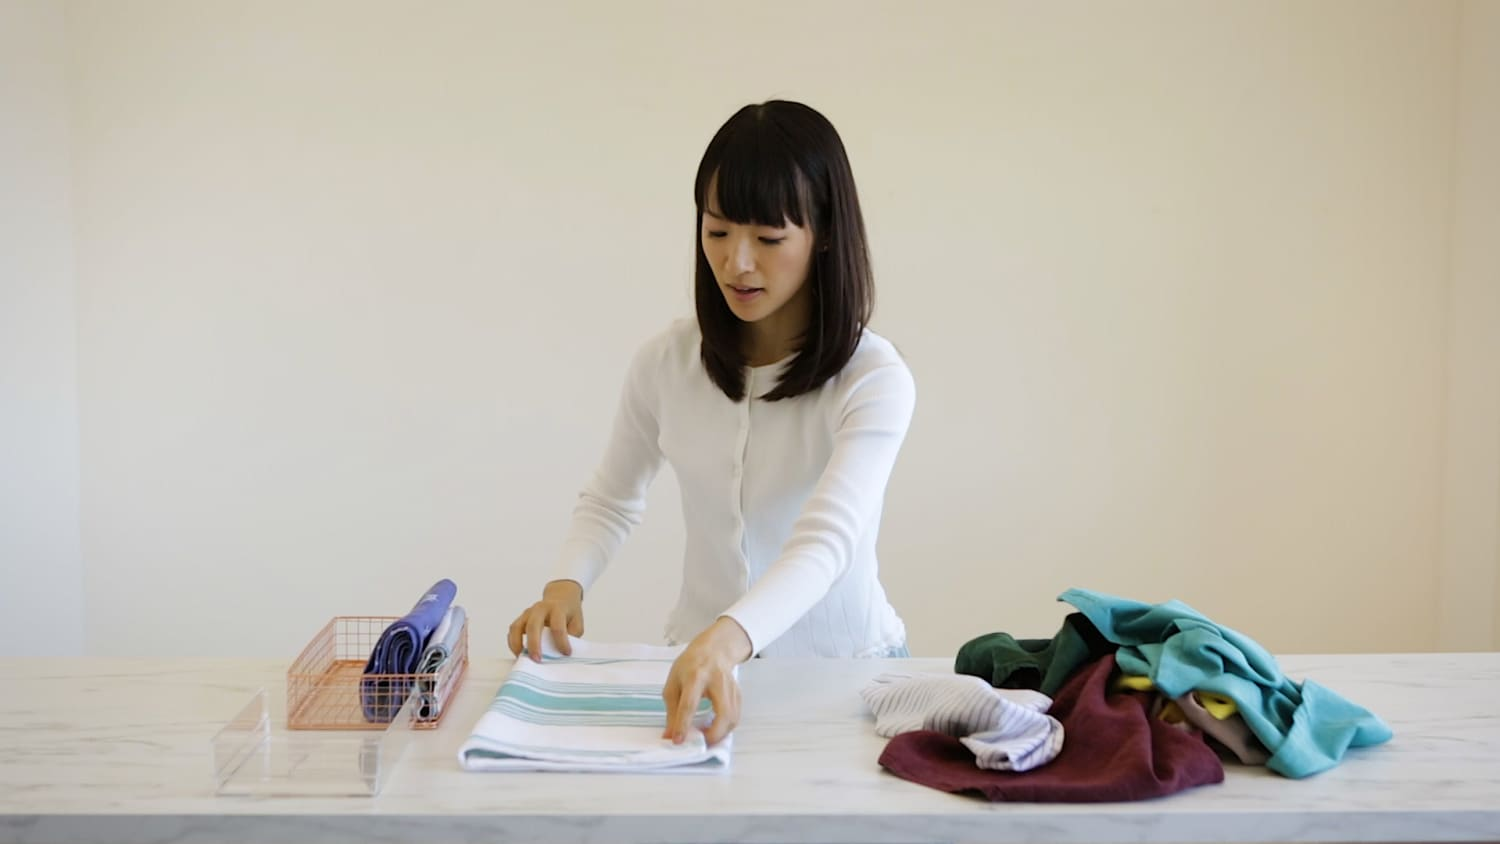 7 Tips We Learned from 'Tidying Up with Marie Kondo'